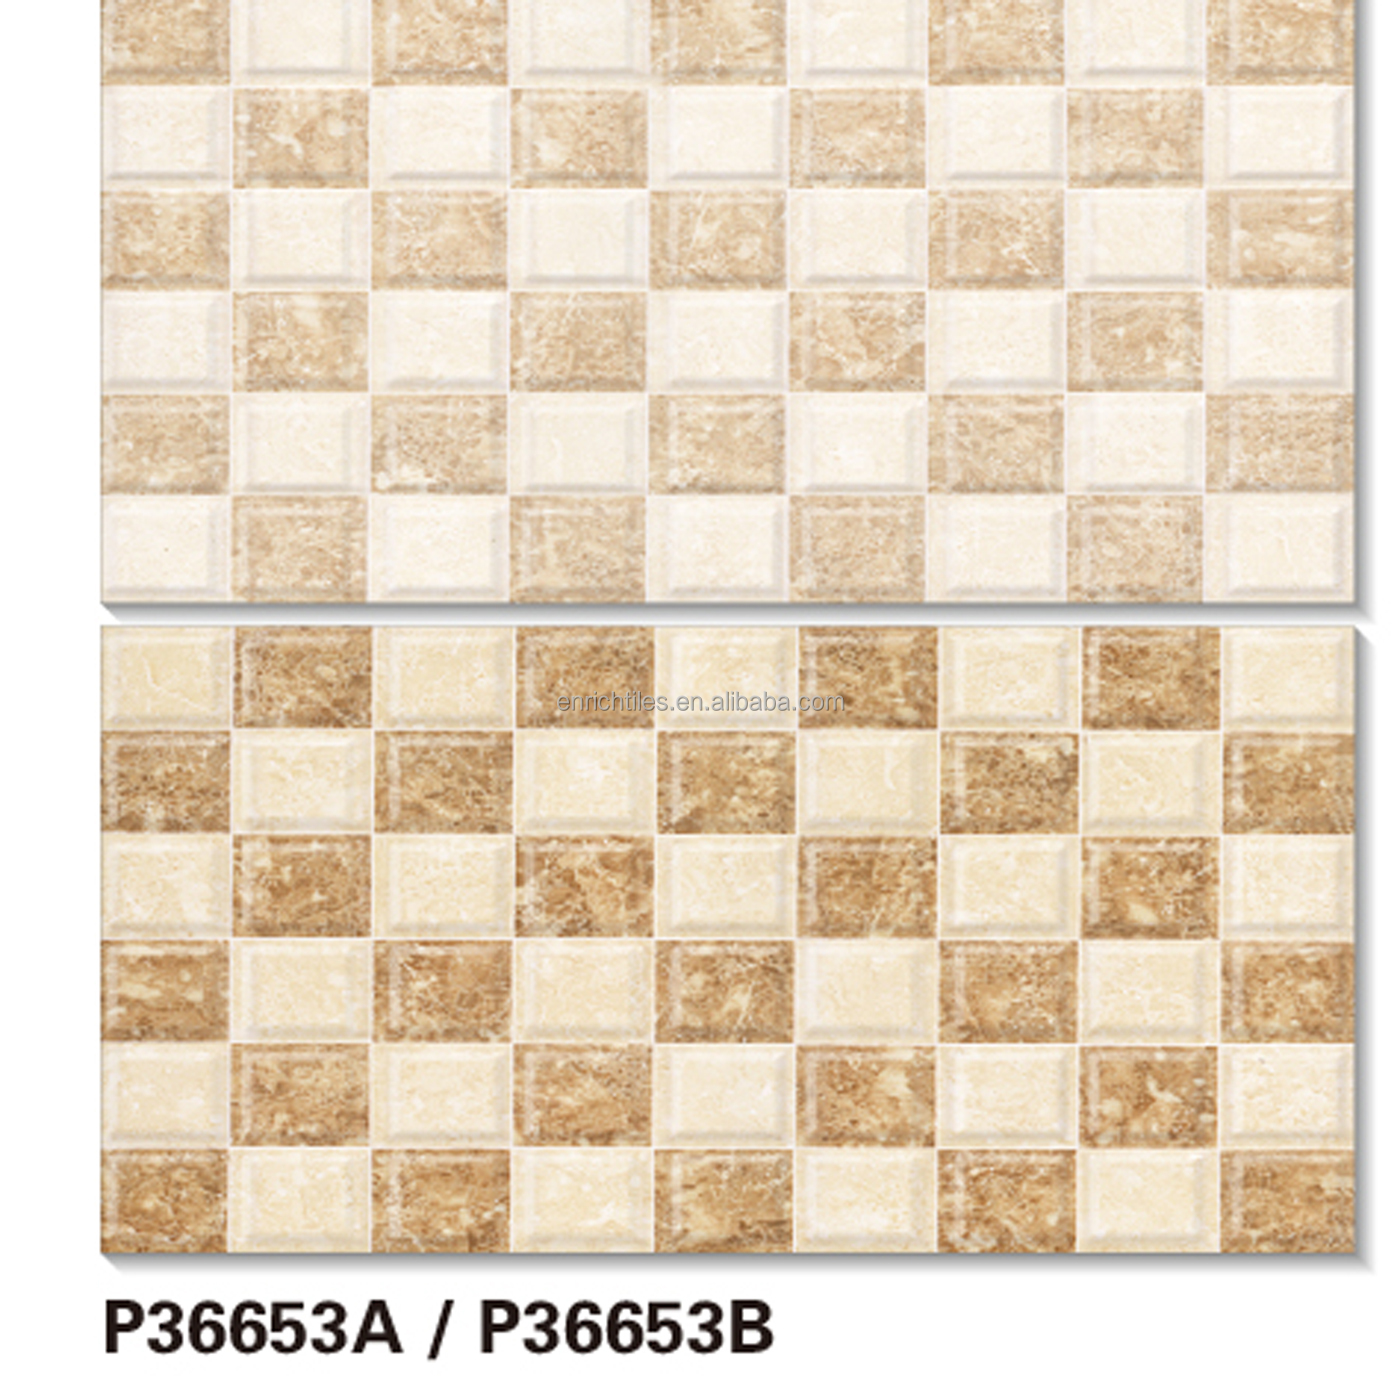 Bedroom Wall Tiles, Bedroom Wall Tiles Suppliers And Manufacturers At  Alibaba.com